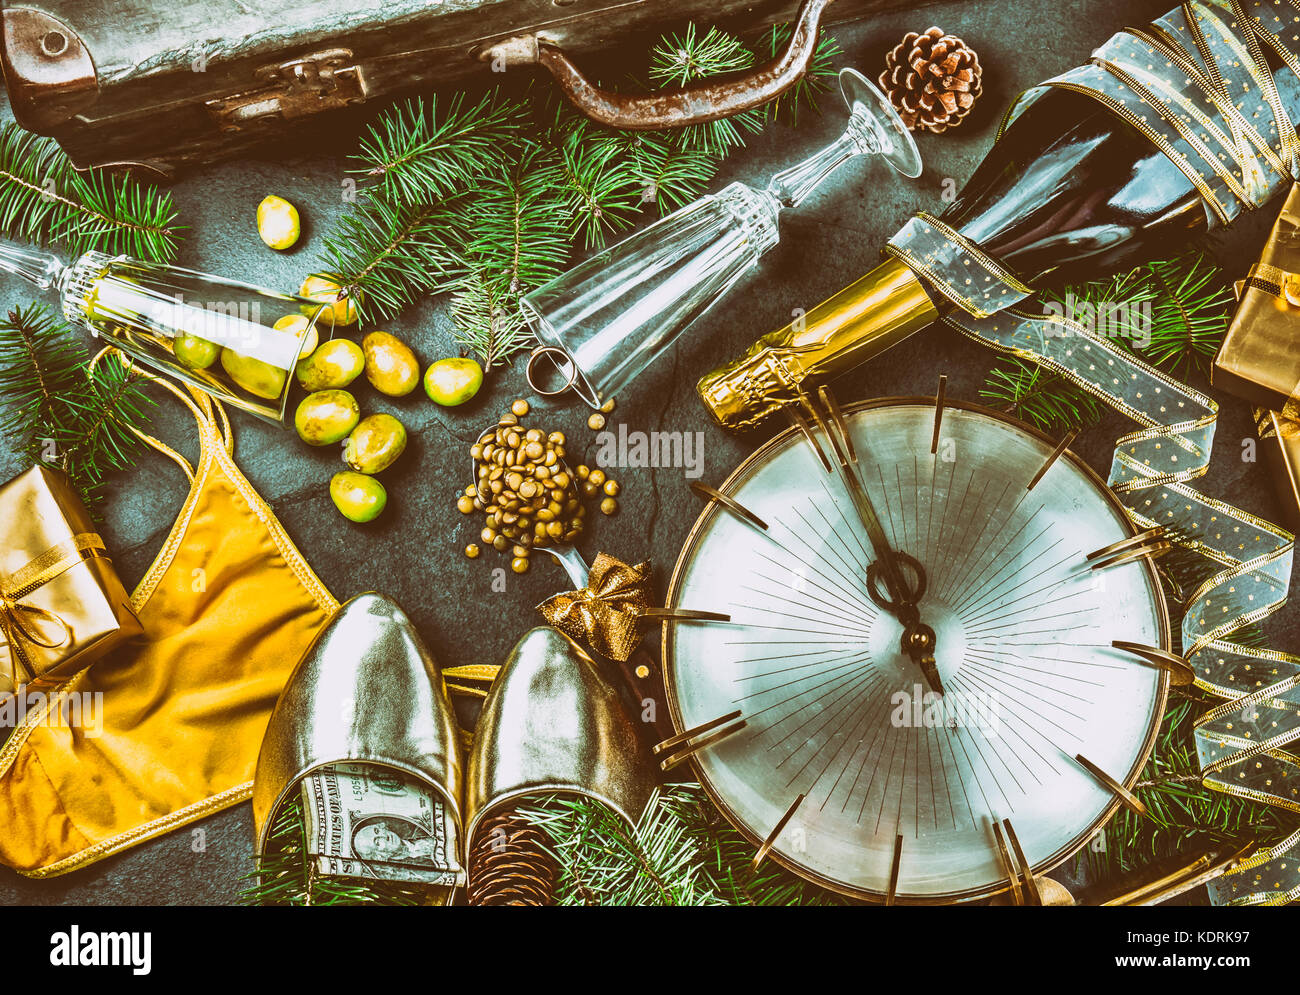 LATIN AMERICAN AND SPANISH NEW YEAR TRADITIONS. empty suitcase, lentil spoon, yellow interior clothes, gold ring - Stock Image